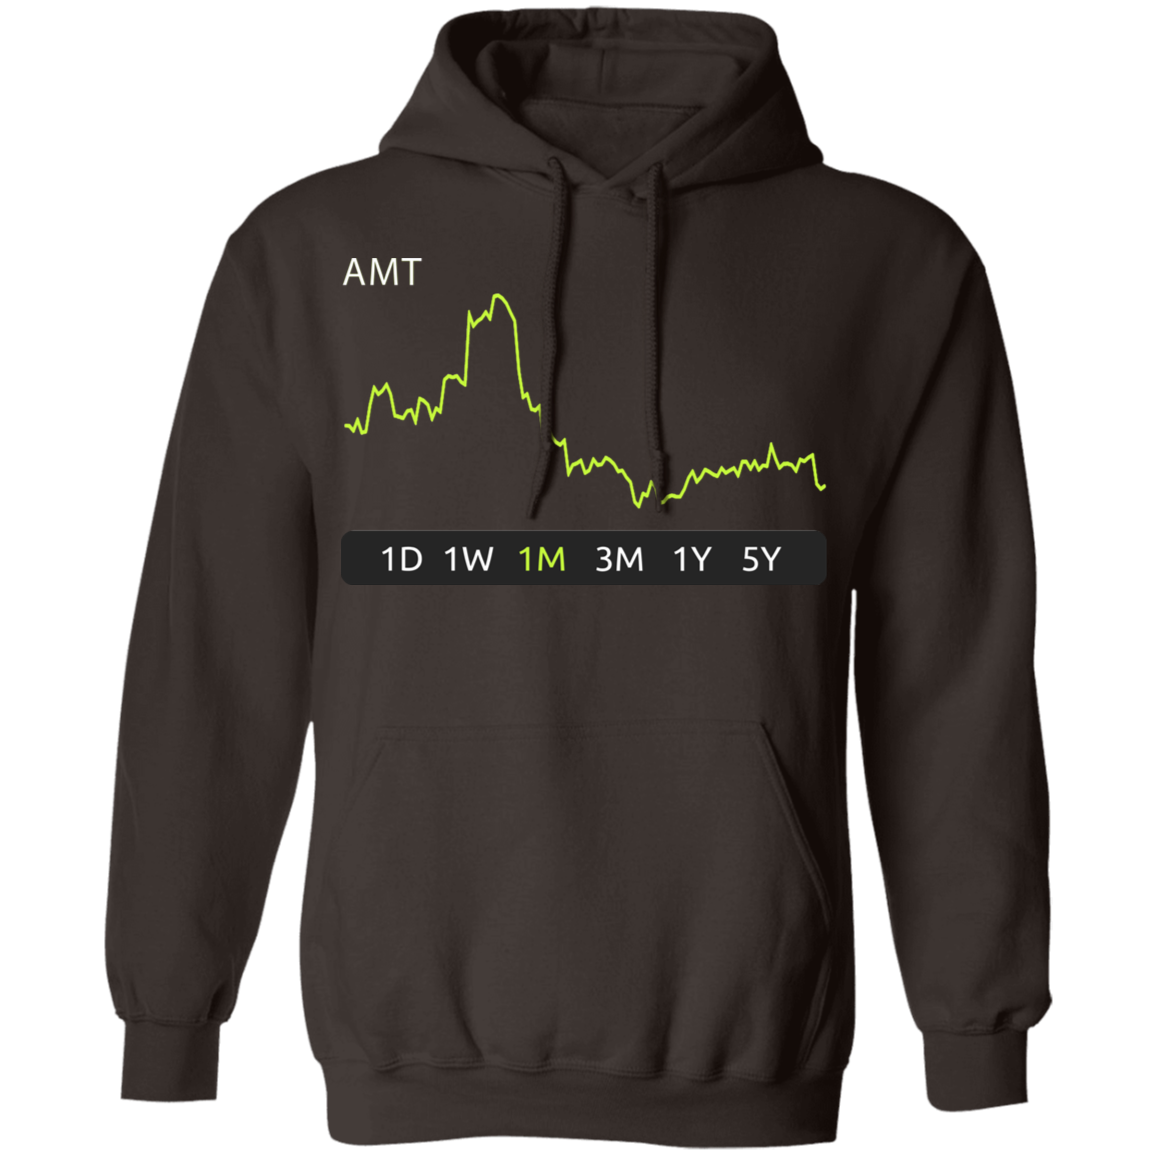 AMT Stock 1m Pullover Hoodie